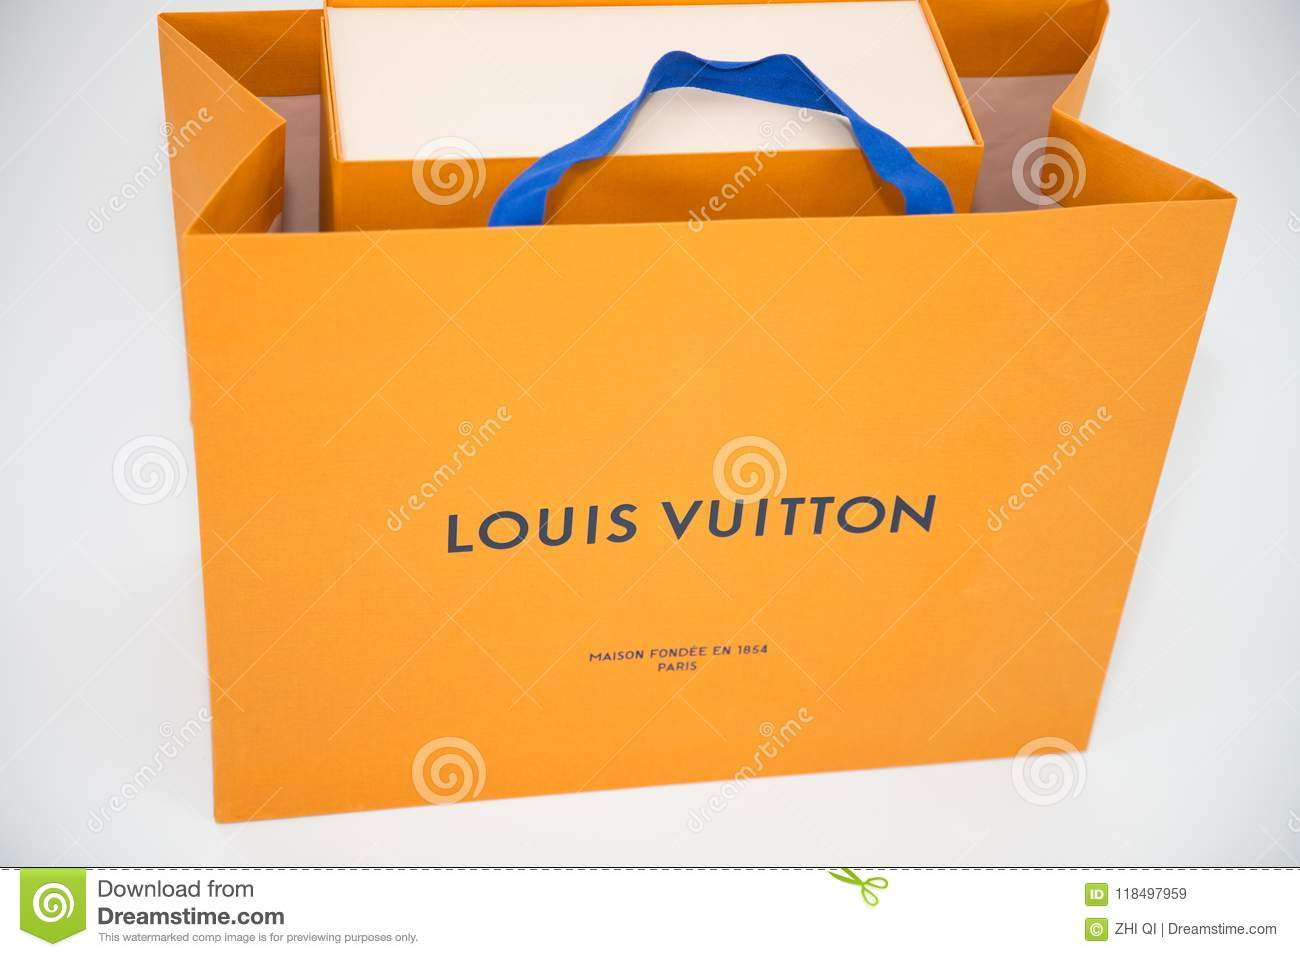 5a514827ab6b A Louis Vuitton box. Louis Vuitton is a designer fashion brand known for  its leather